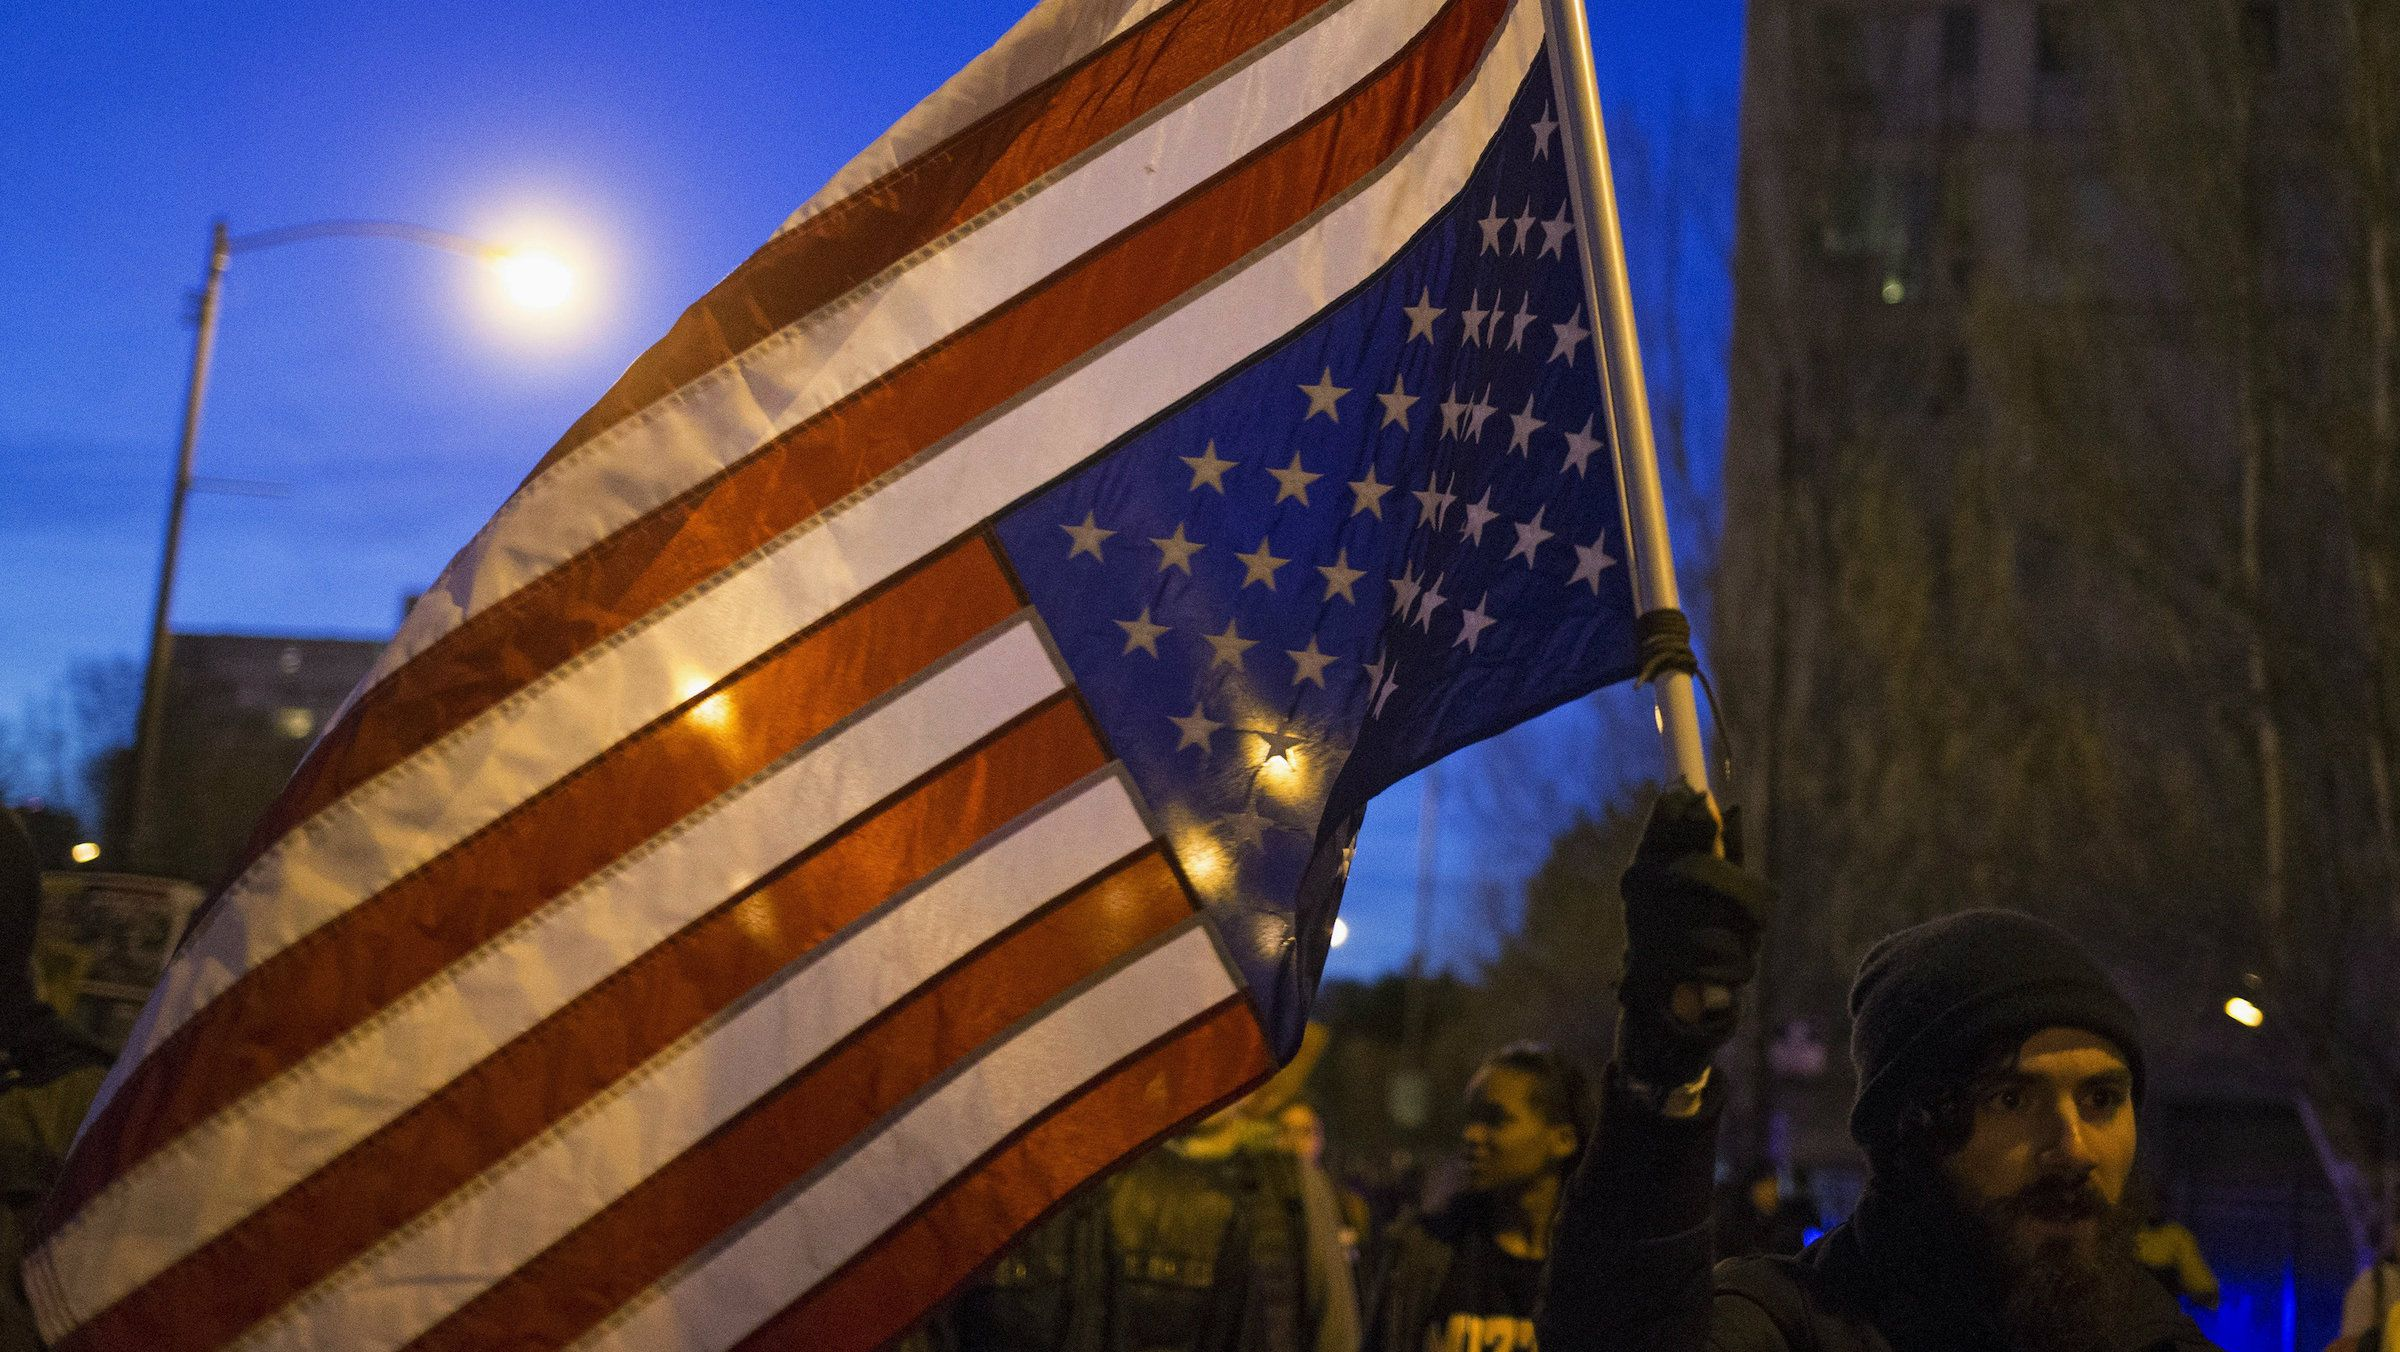 China has issued a scathing report on human rights abuses in the United States